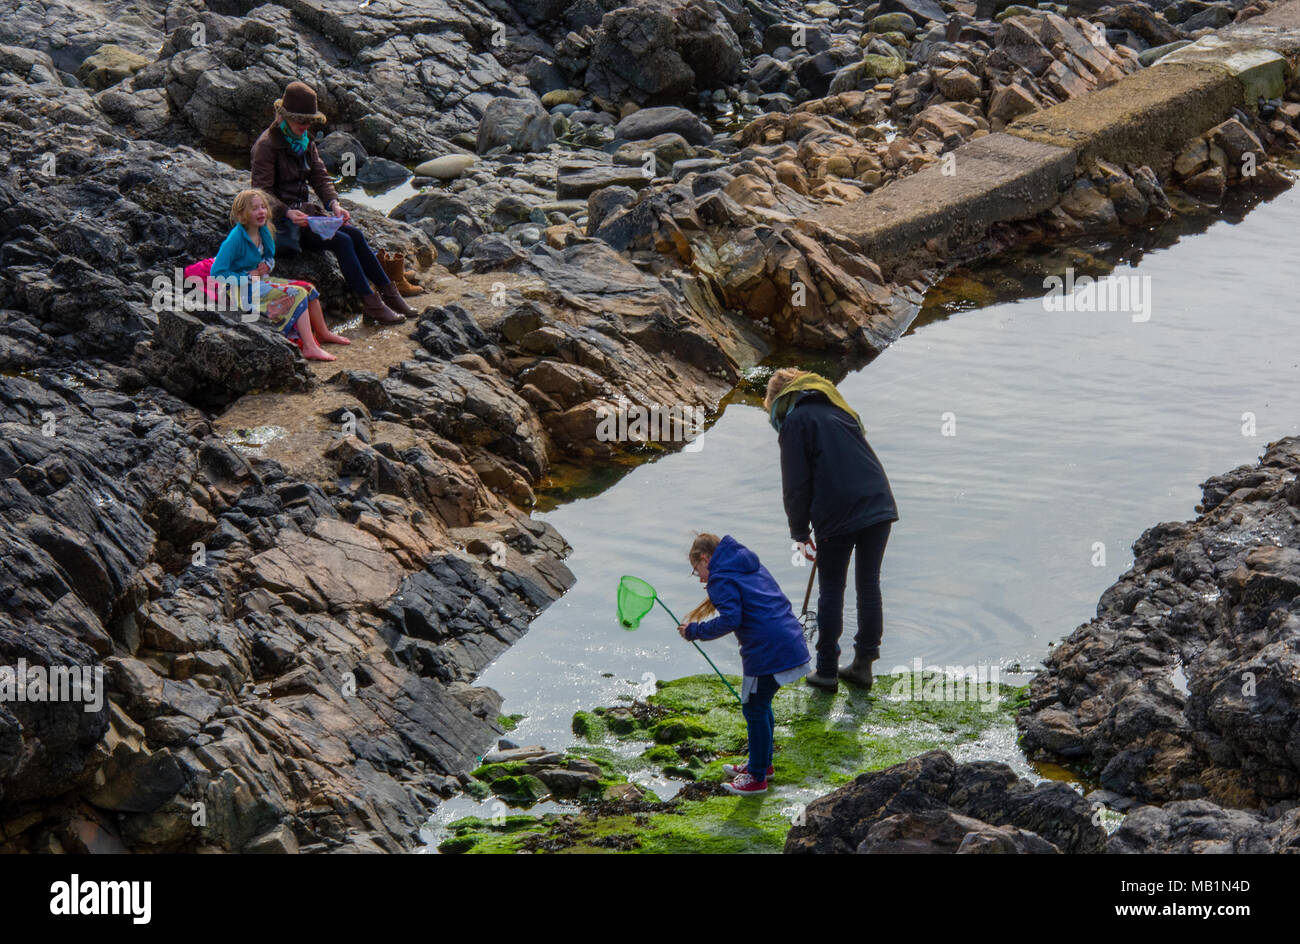 Mums and kids or children fishing in the rock pools or rockpooling at st Ives in west cornwall. Playing with children parents in pools on the rocks. Stock Photo